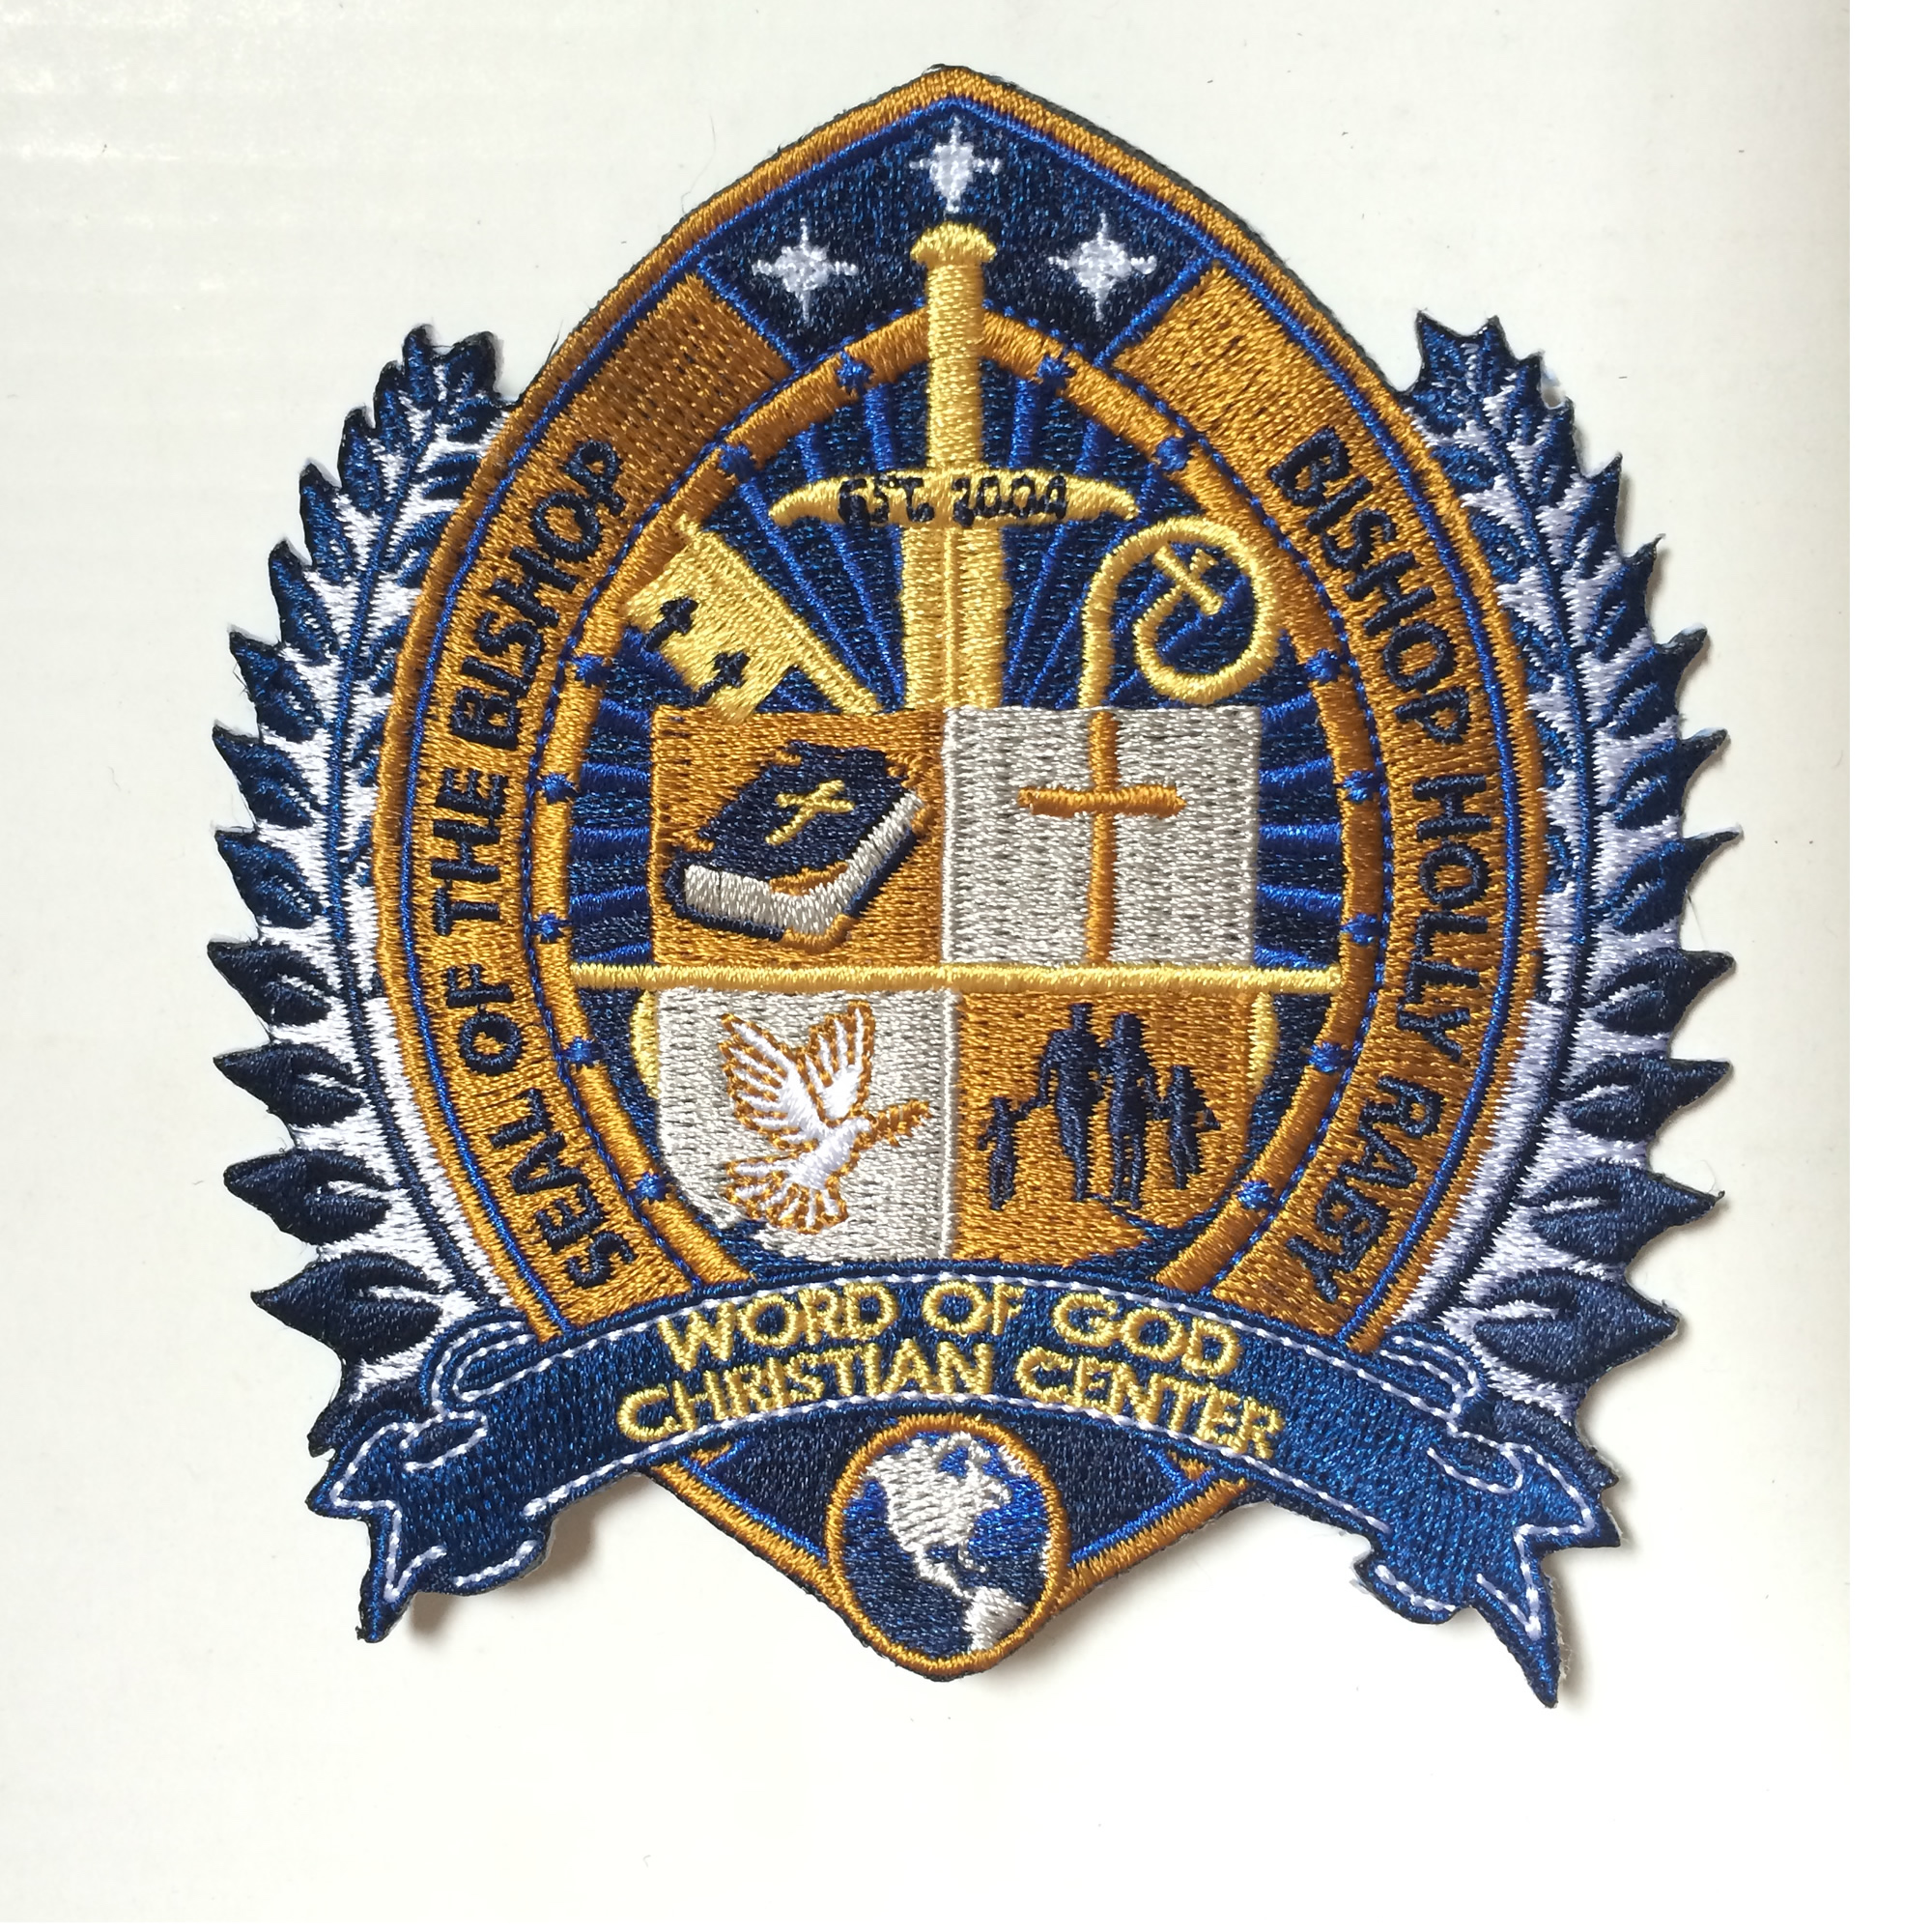 Seal Of Bishop Embroidery Patches 100% Embroidered Garment Badge Heat Cut Iron-on Backing As Customized Design Free Shipping